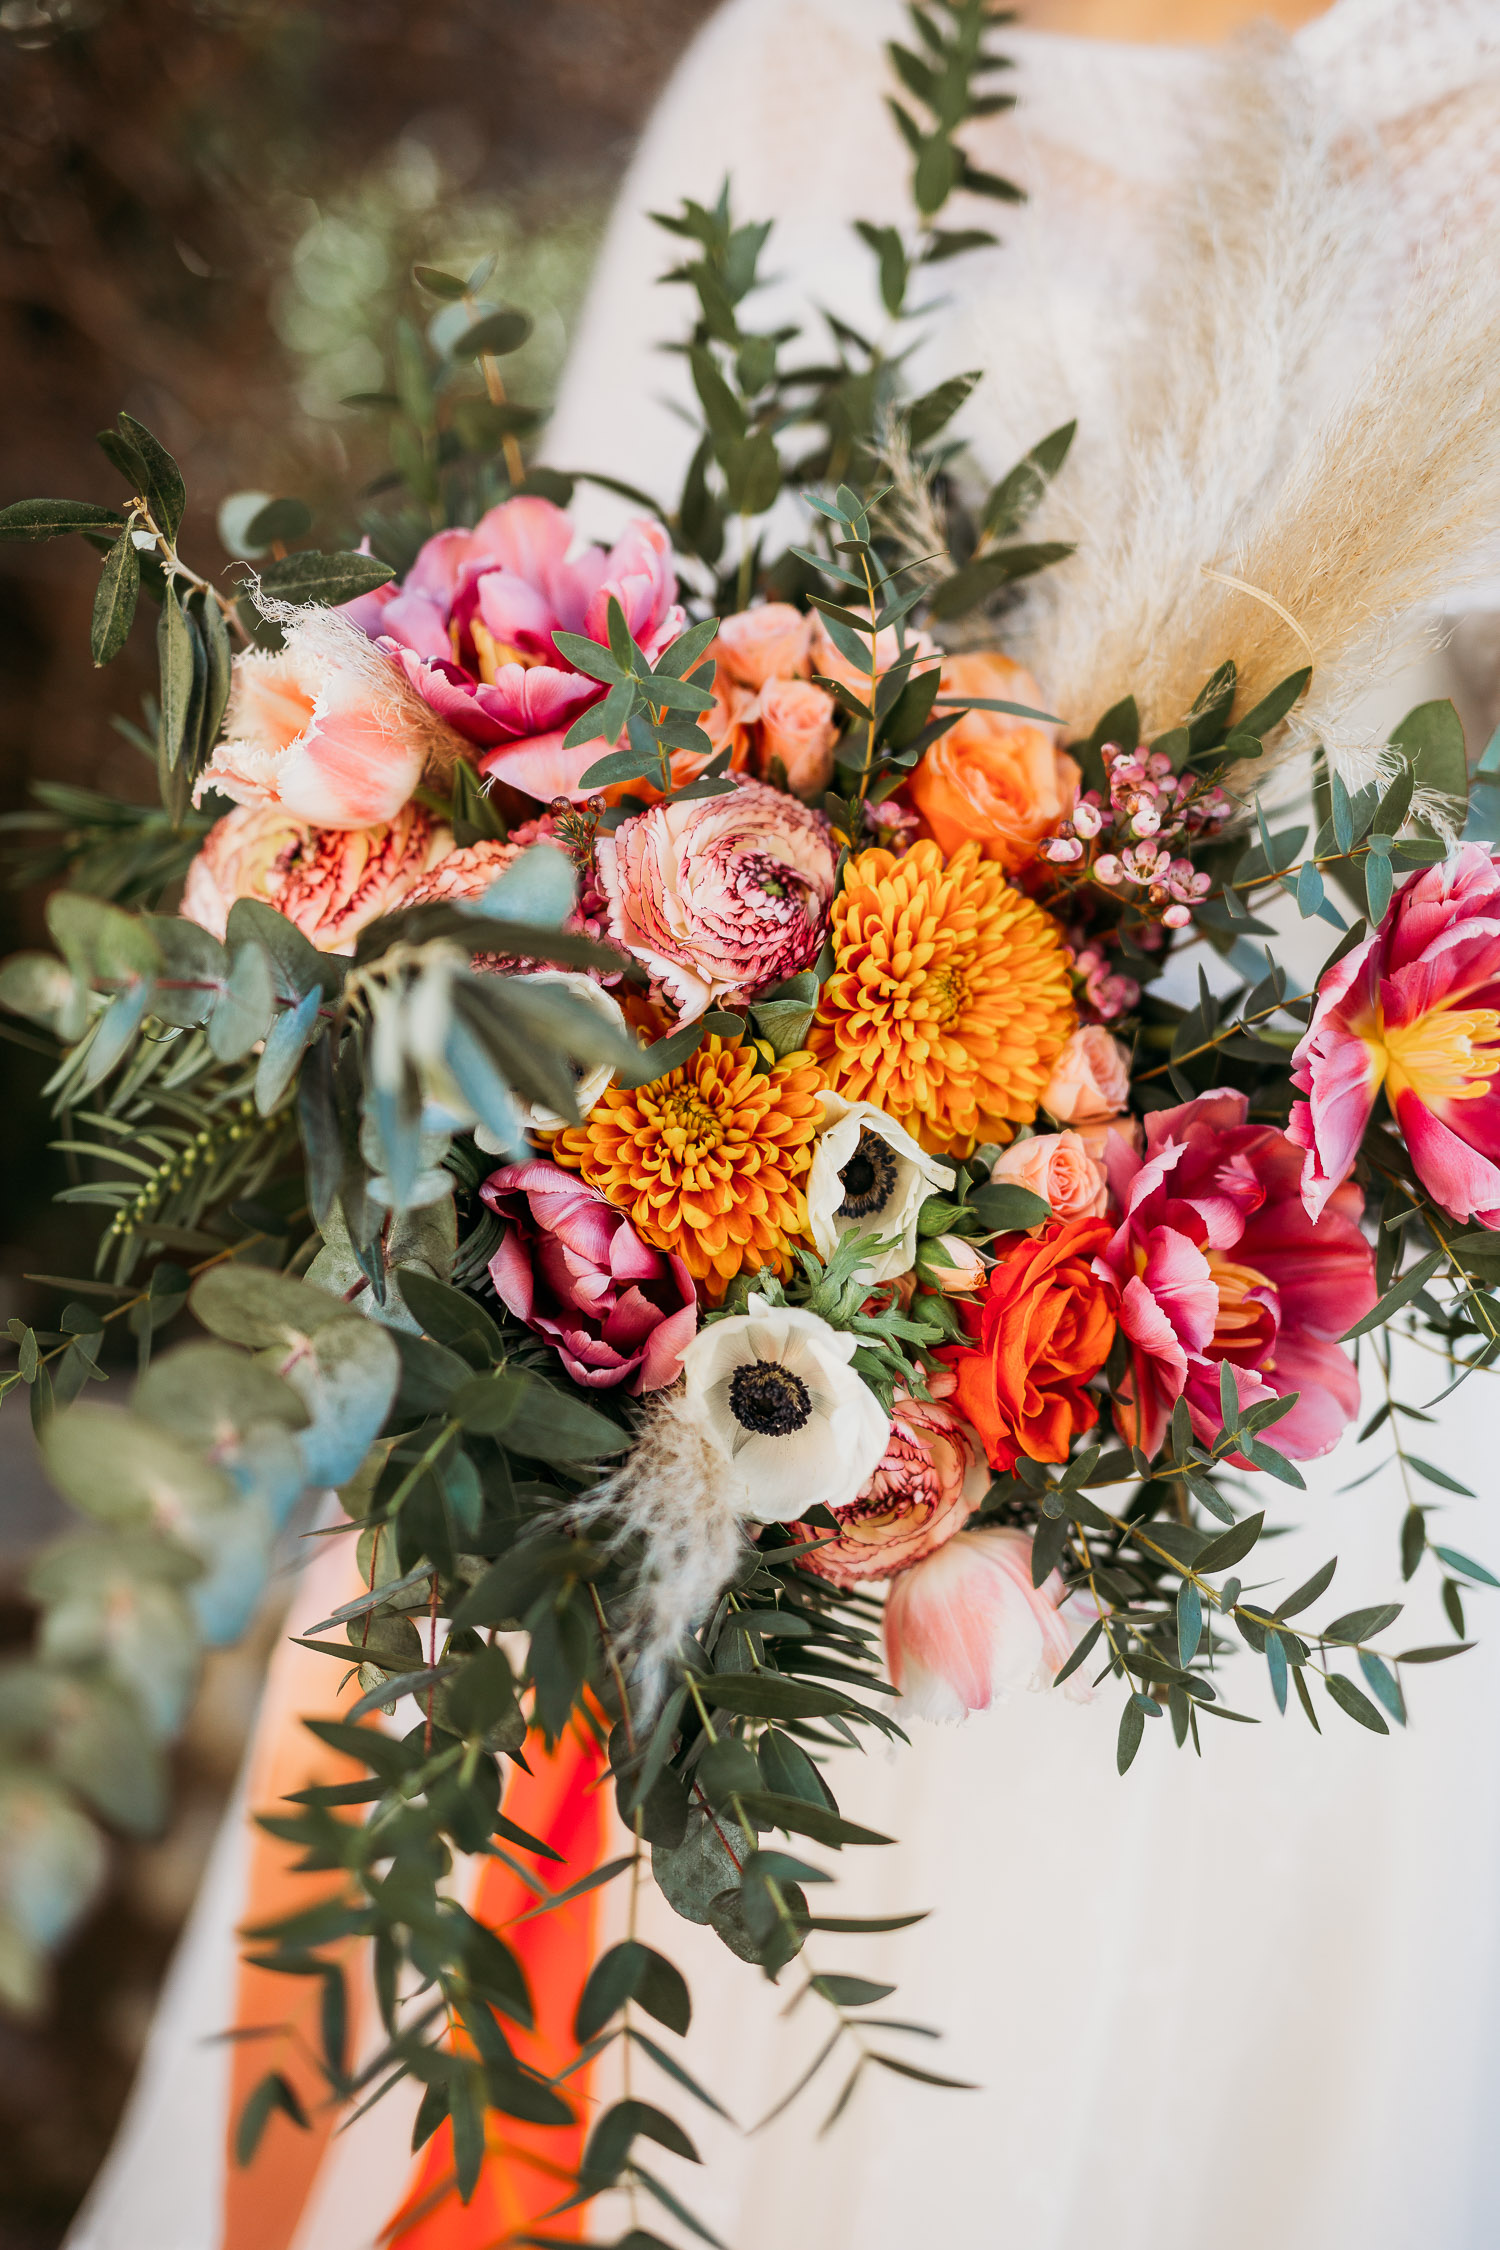 Whimsical orange and pink bouquet for a winter wedding made by Sposami Oggi fort Tenimento il Castello